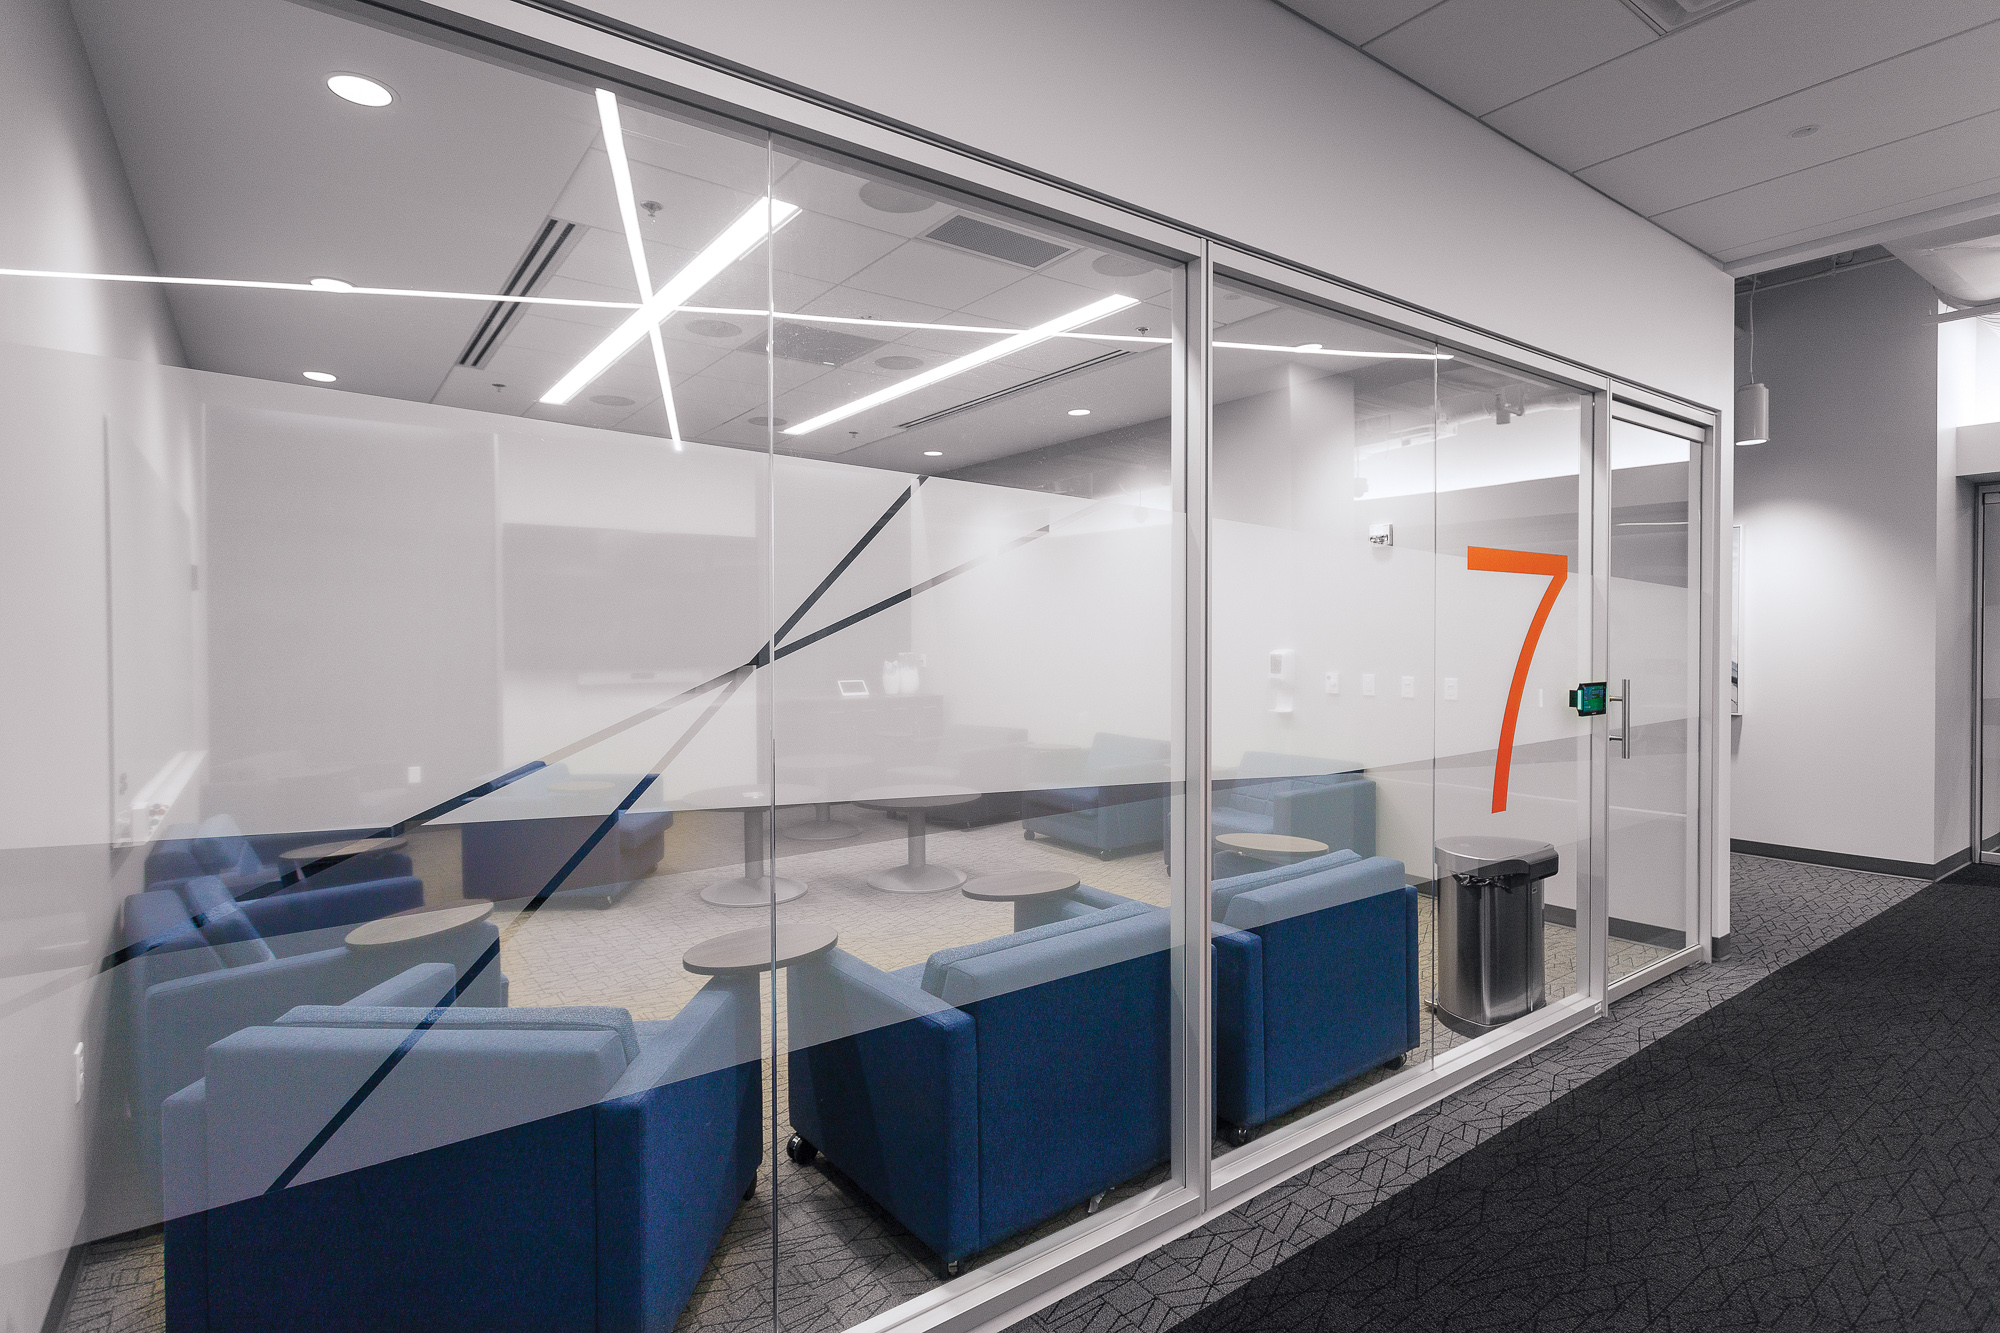 HCA Building 4_Environmental Branding_Commercial Window Film_Room 7_MG_2007_small 2000 px.jpg